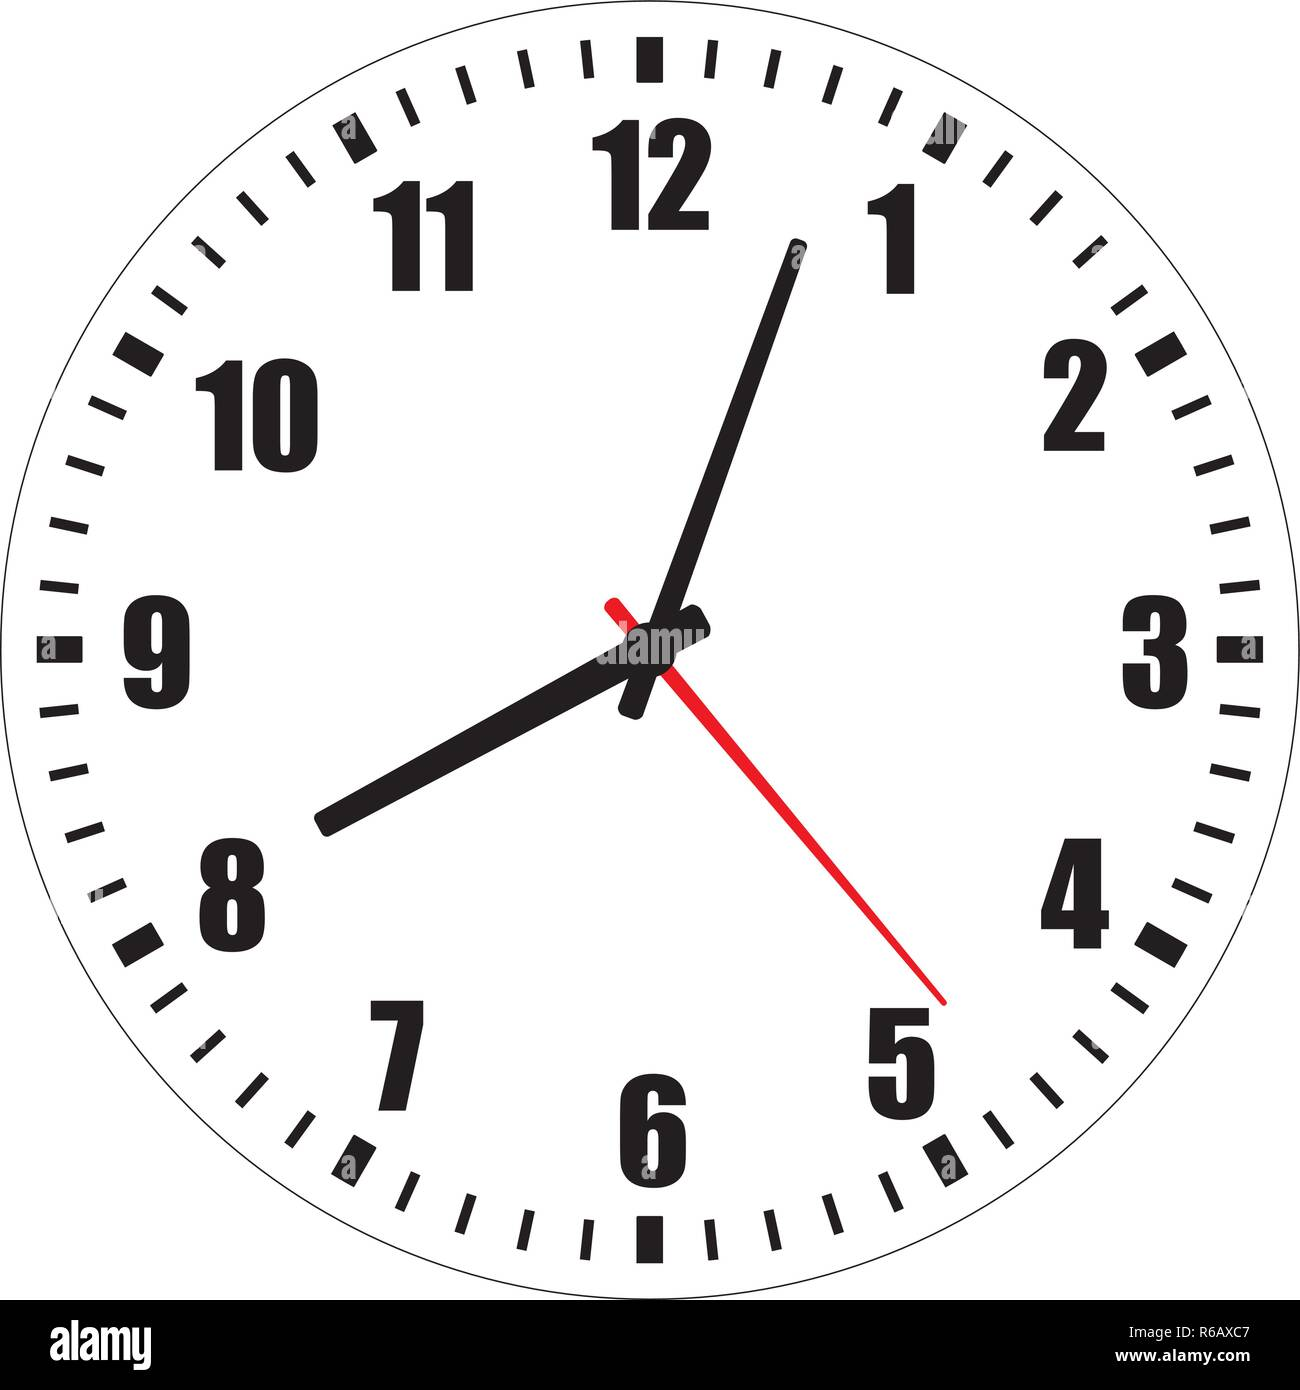 photo relating to Printable Clock Face With Hands titled Vector example of blank clock confront dial with Arabic